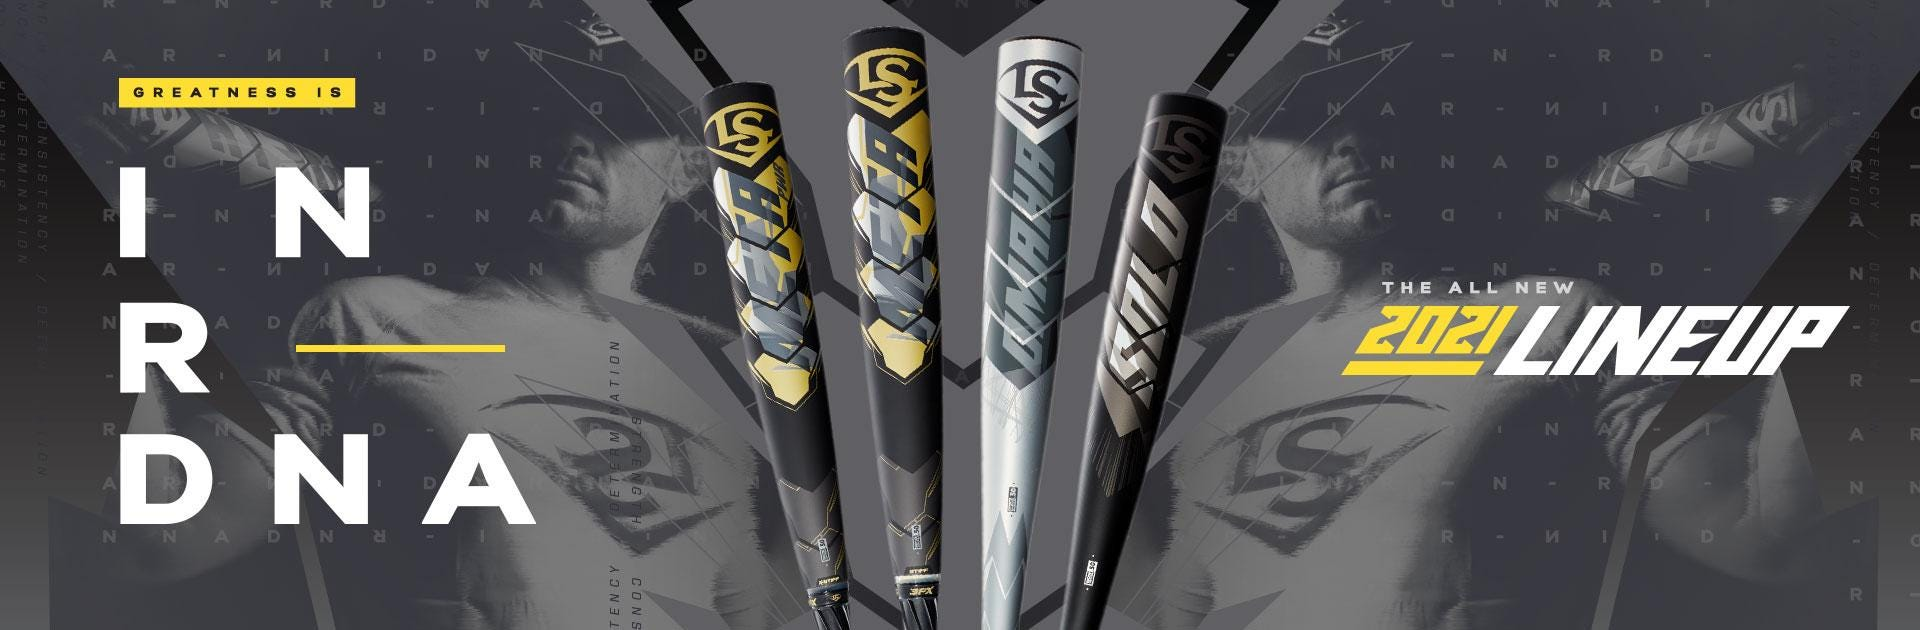 Greatness is in our DNA. Shop the new 2021 Louisville Slugger Baseball Bats.